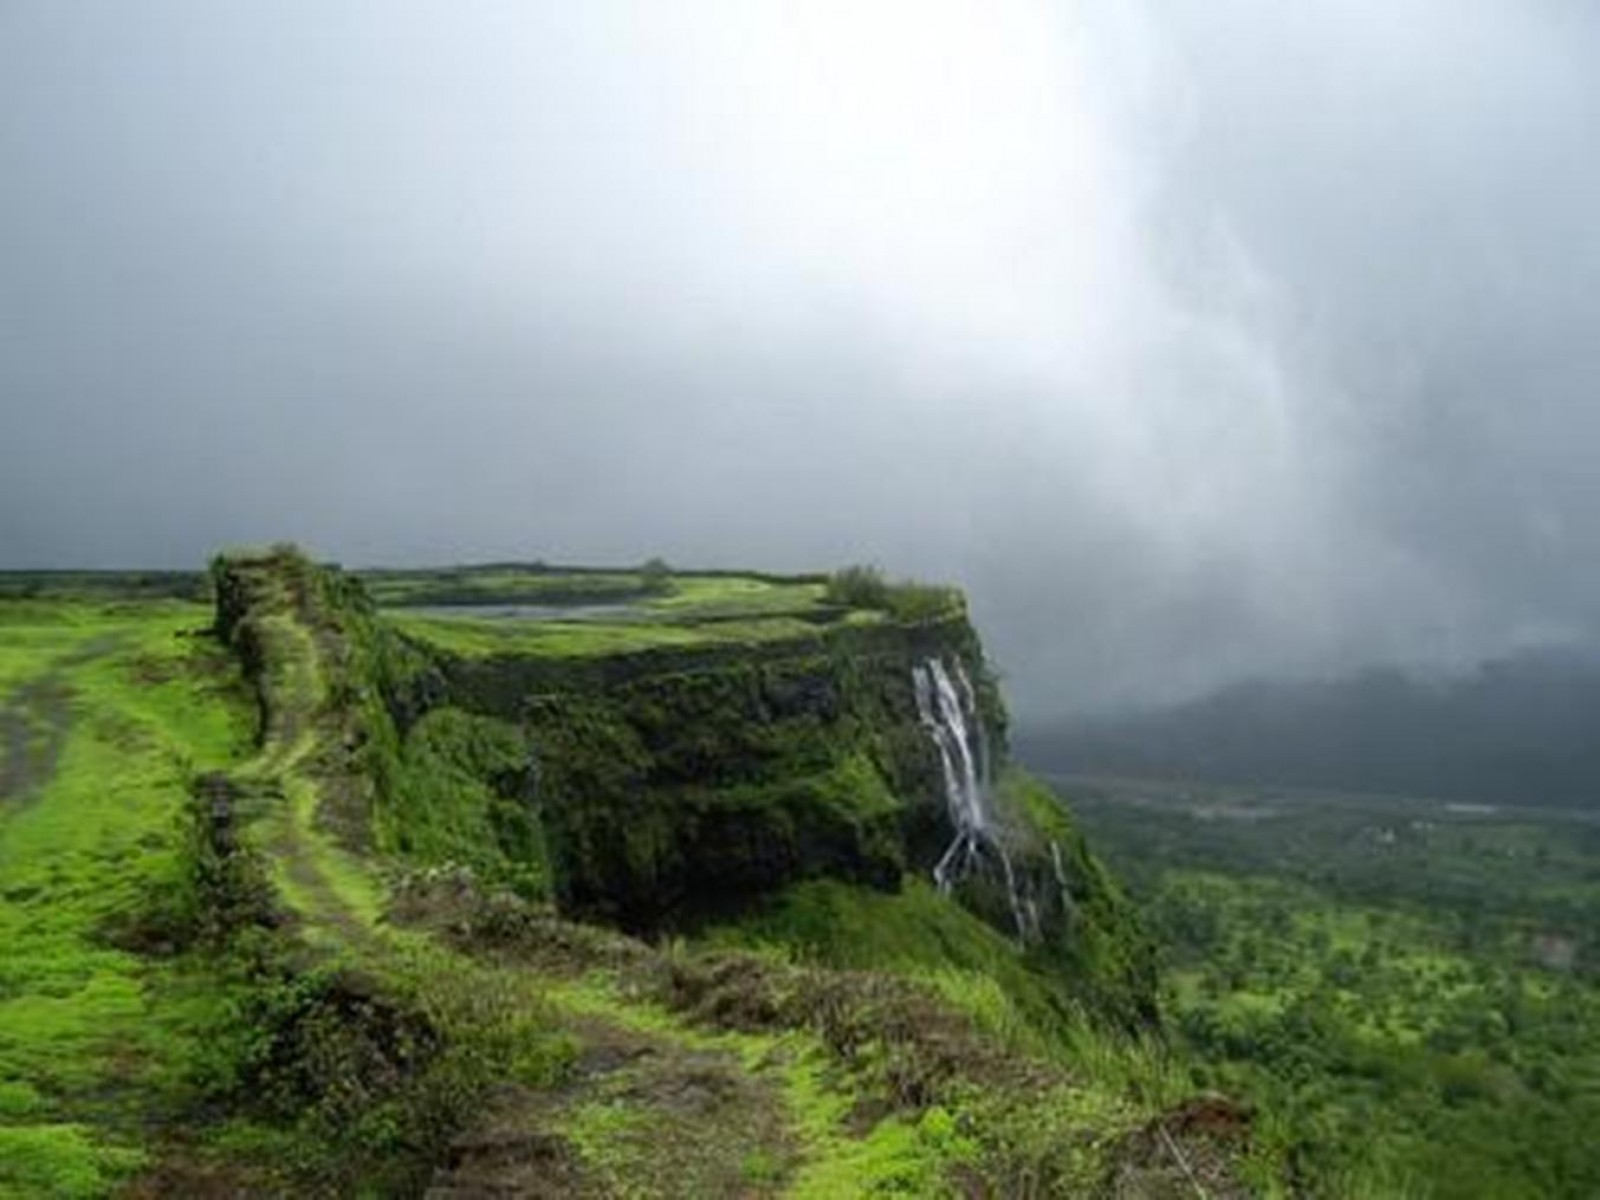 Trekking Korigad Maharashtra Adventure Travel The Great Next